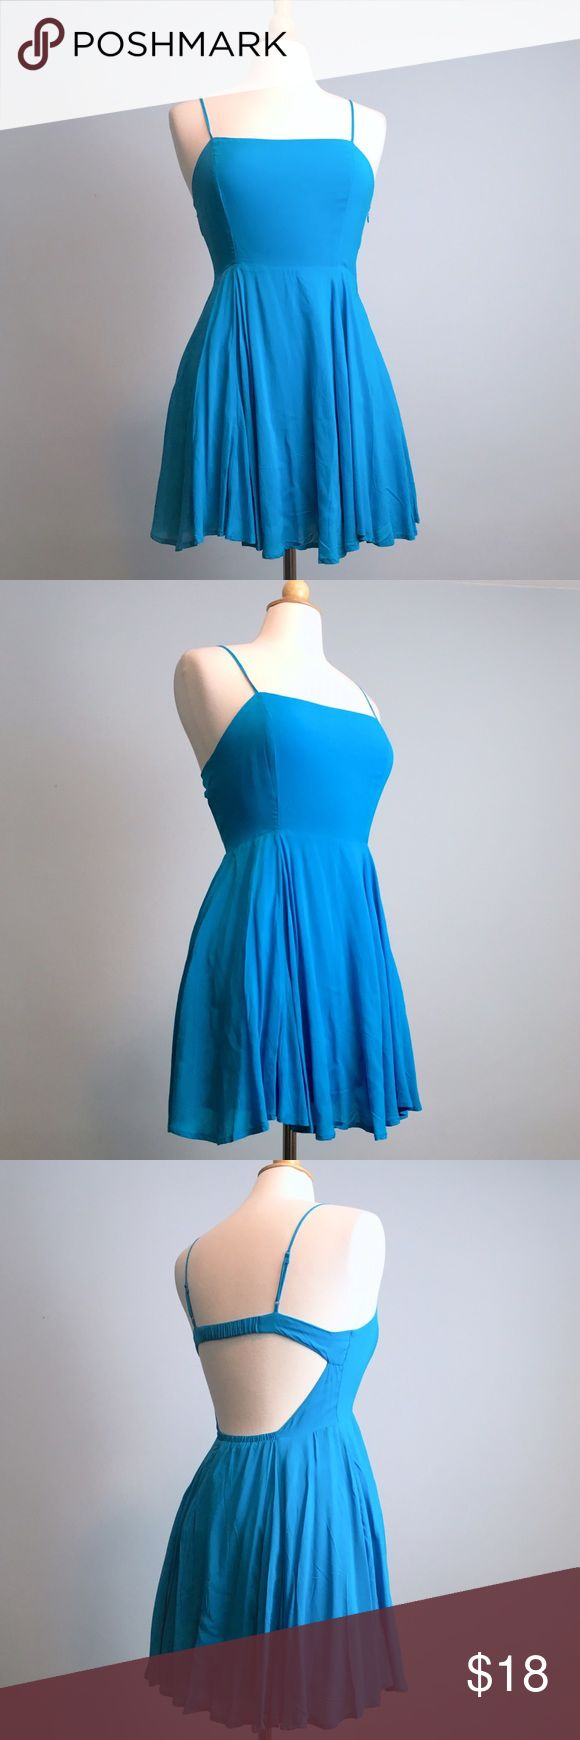 Forever 21 Blue Cut Out Back Skater Dress This electric blue flowy dress has a cut out back, full skirt and a zipper closure. Perfect for spring. It's only been worn once. Forever 21 Dresses Mini